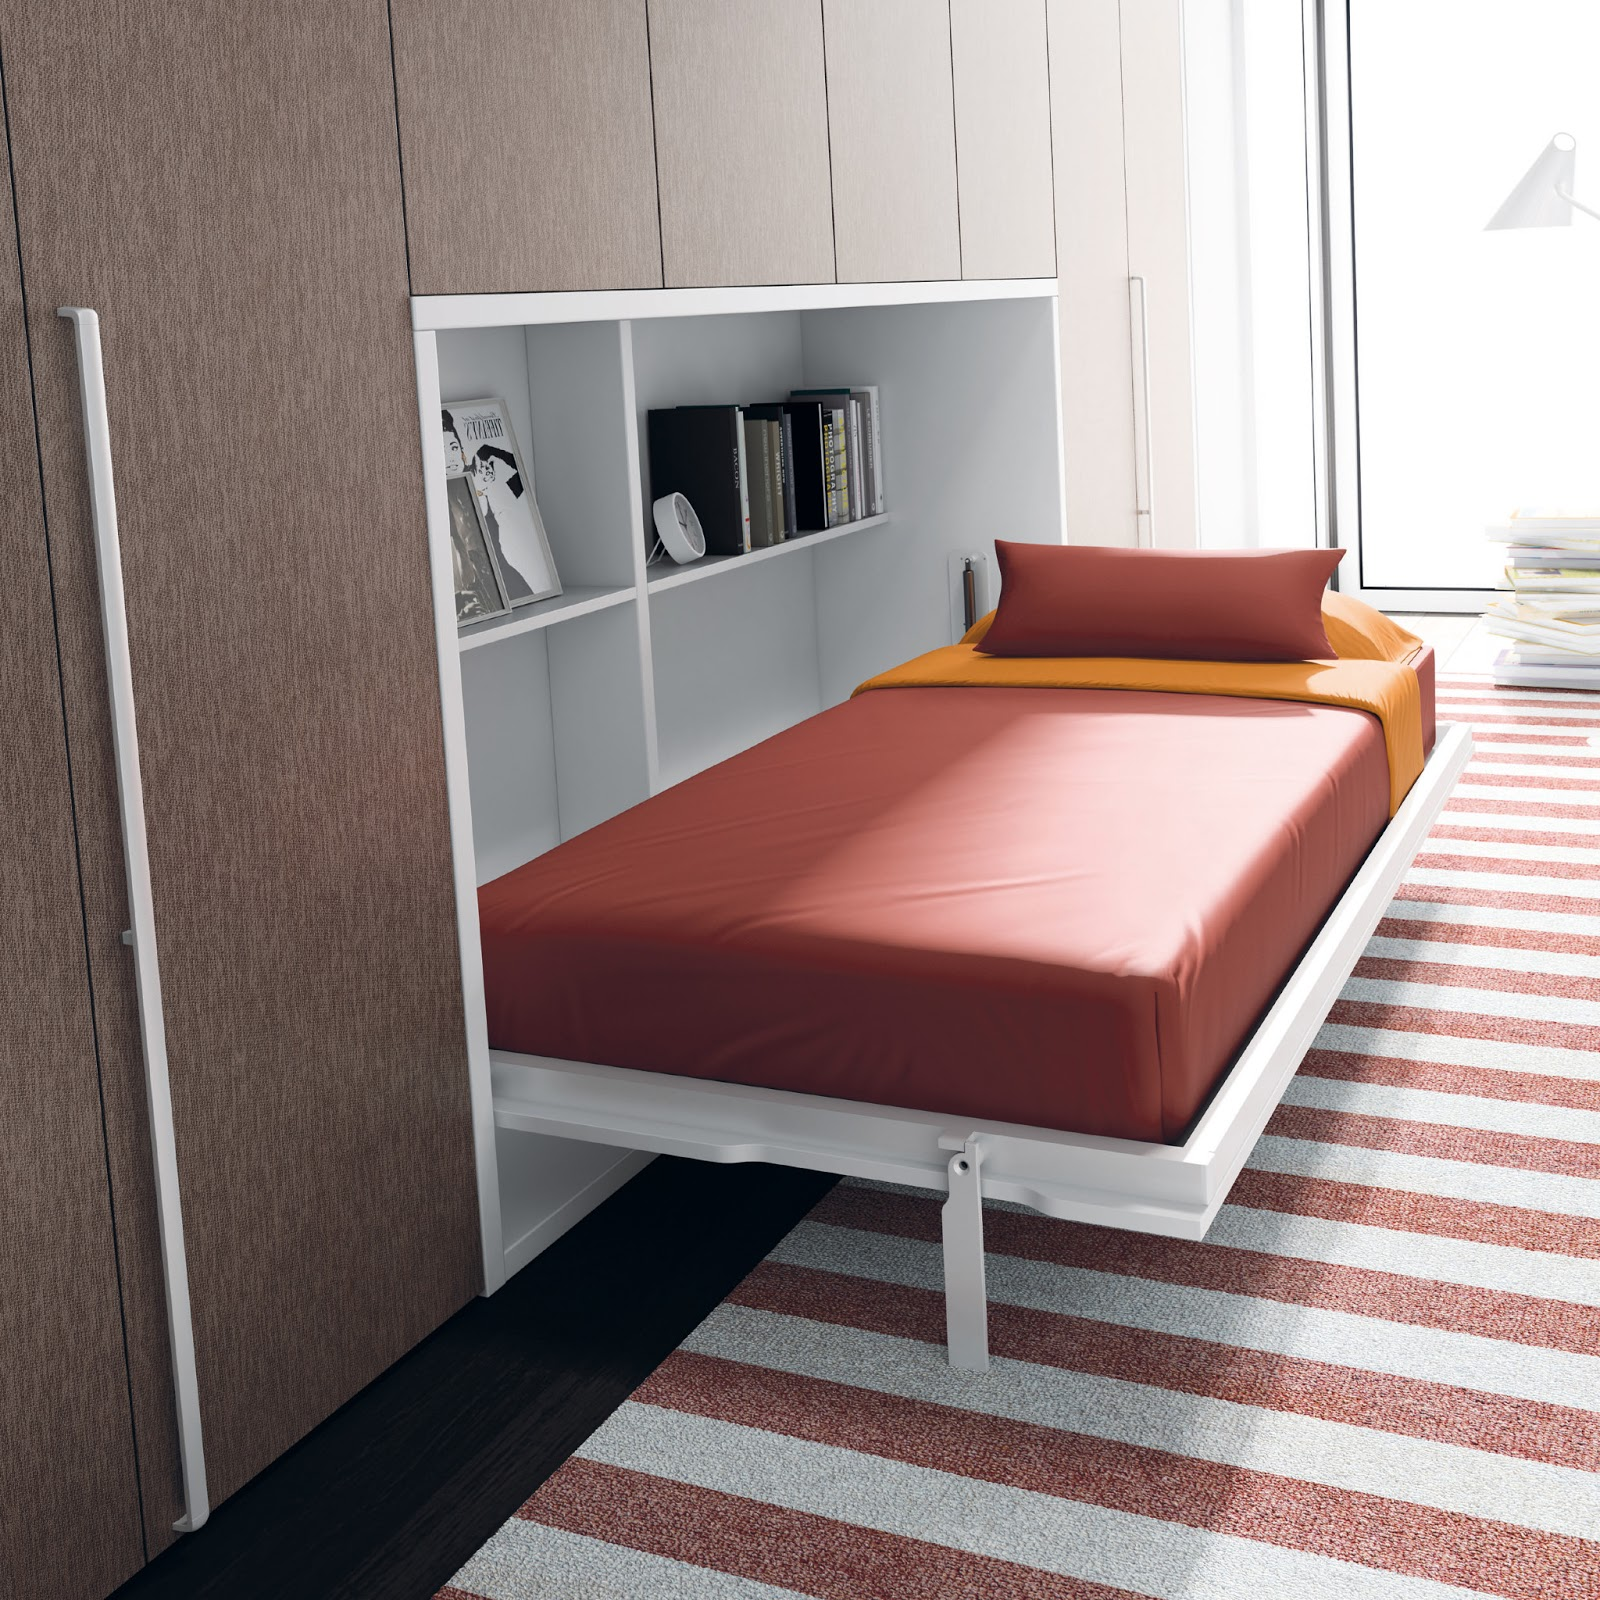 C mo decorar la casa ikea cama abatible for Cama mueble ikea